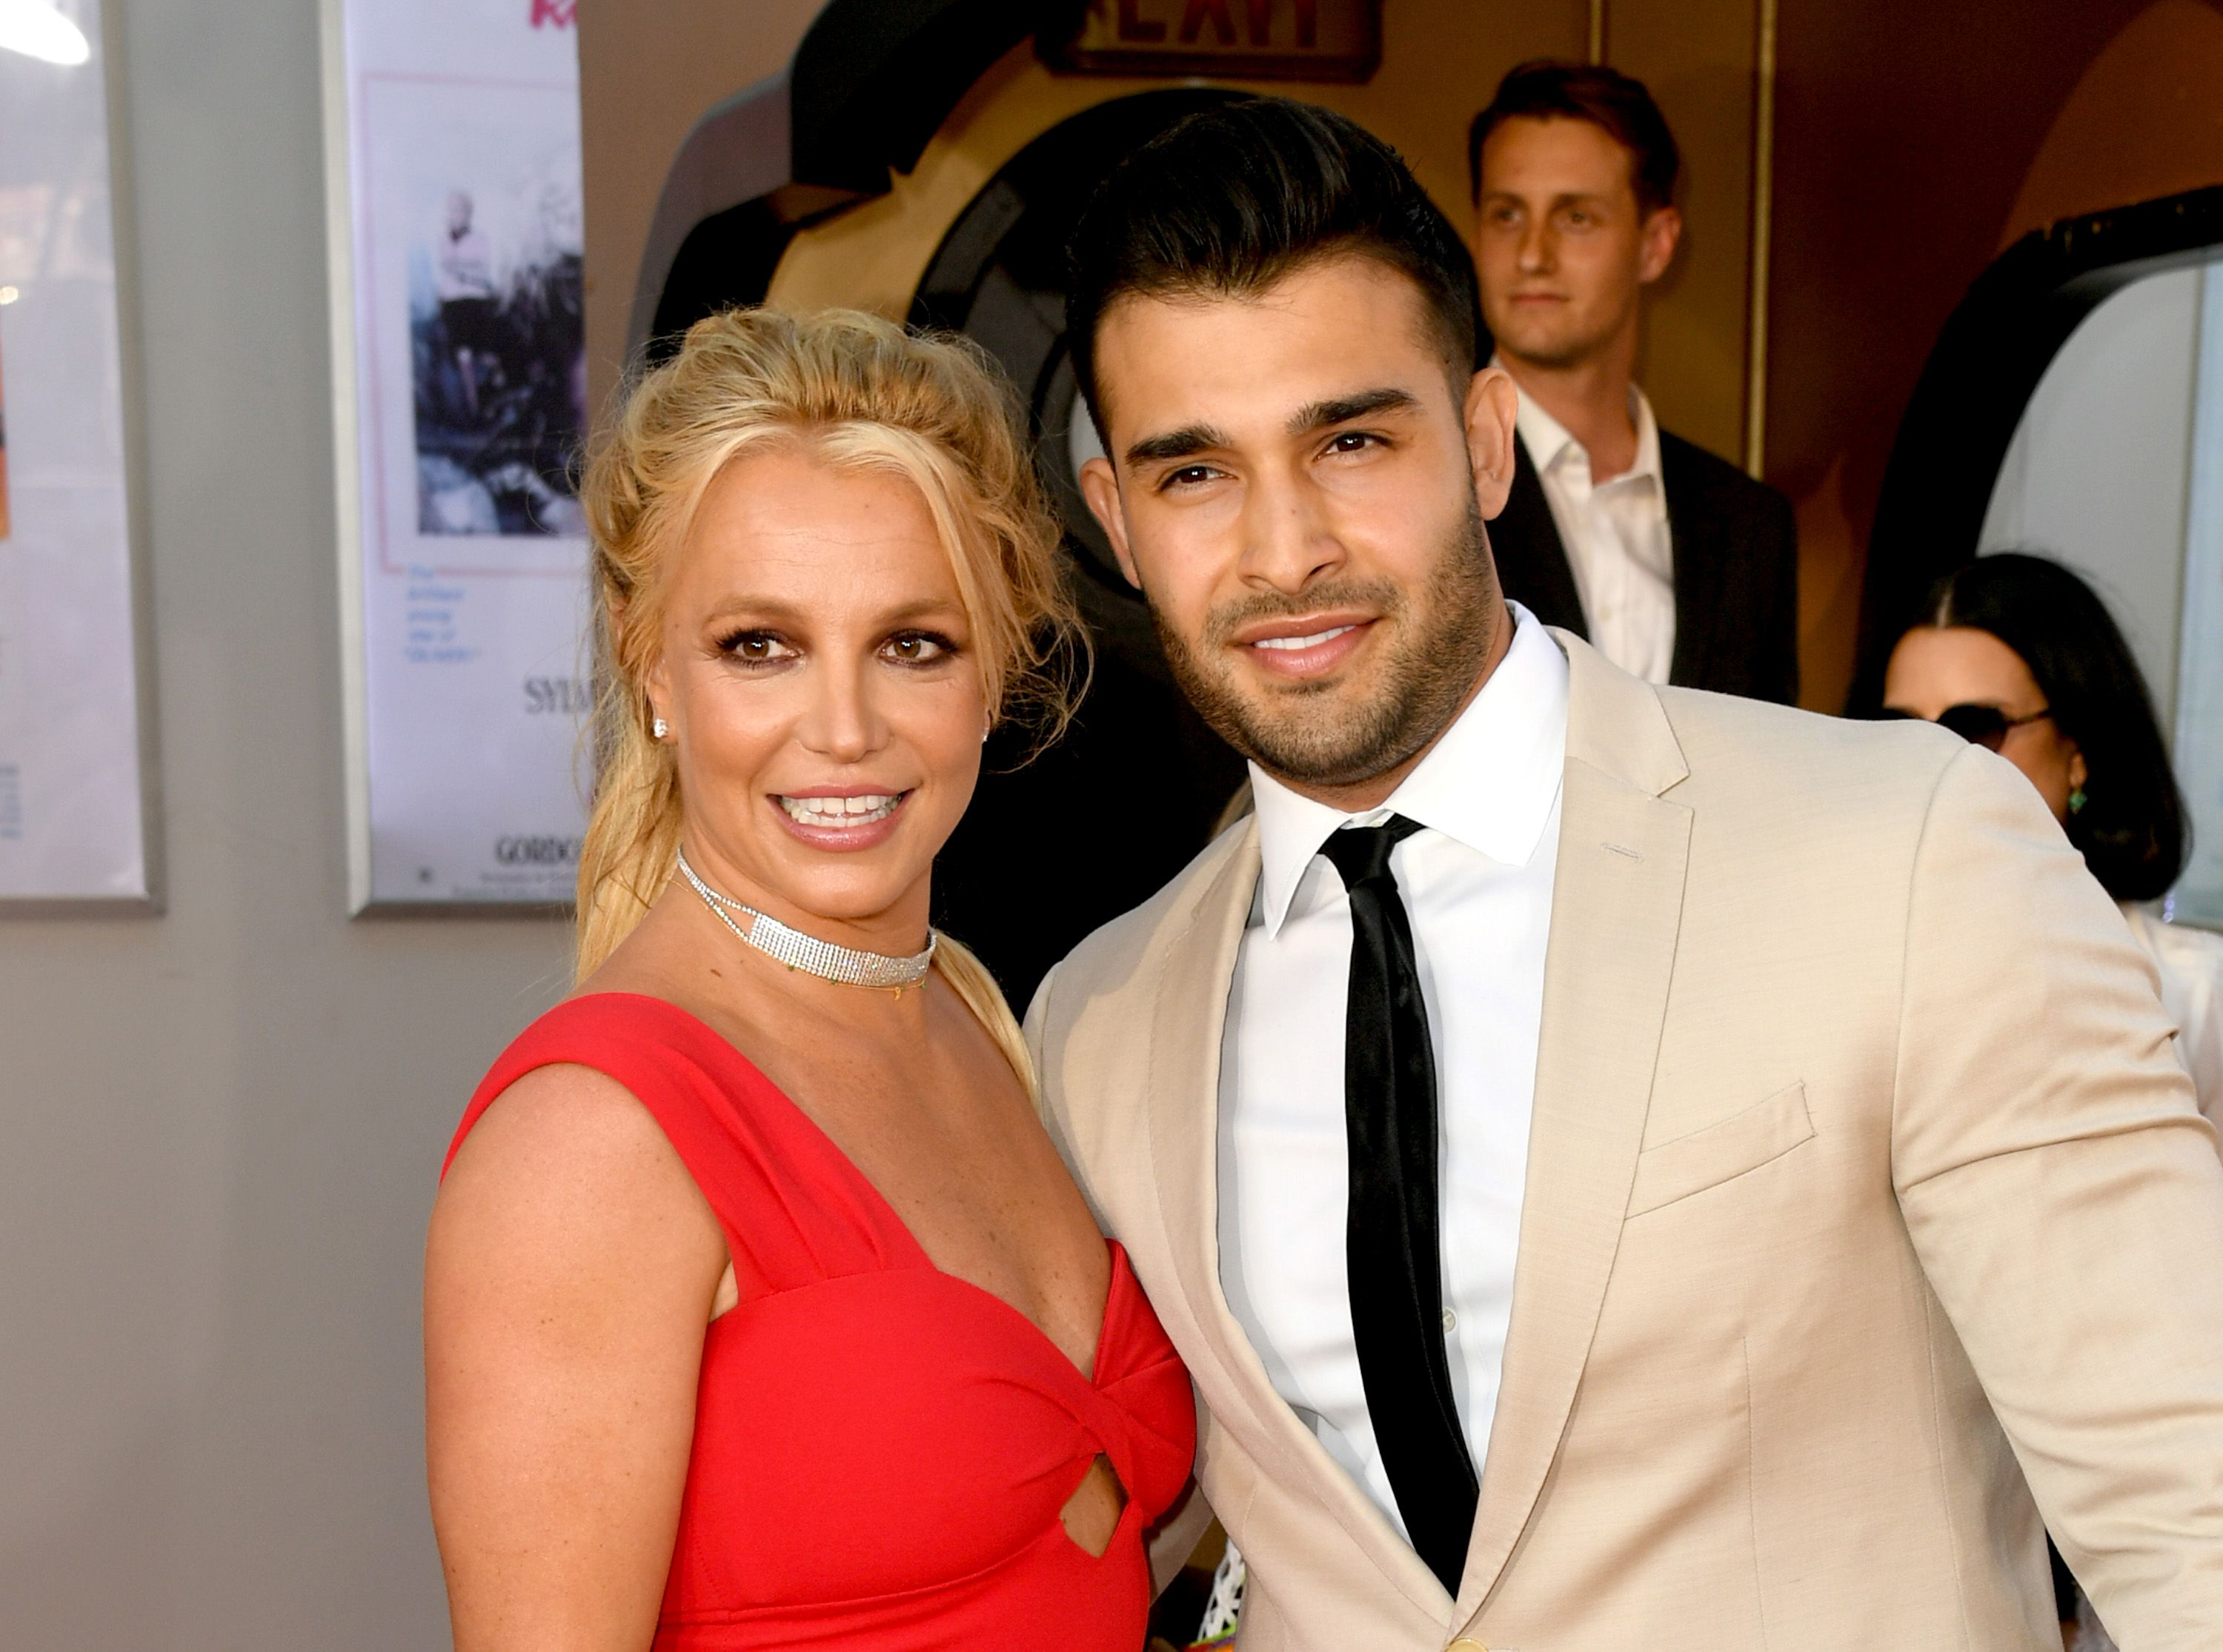 """Britney Spears (L) and Sam Asghari at the premiere of Sony Pictures' """"One Upon A Time...In Hollywood"""" at the Chinese Theatre on July 22, 2019   Photo: Getty Images"""